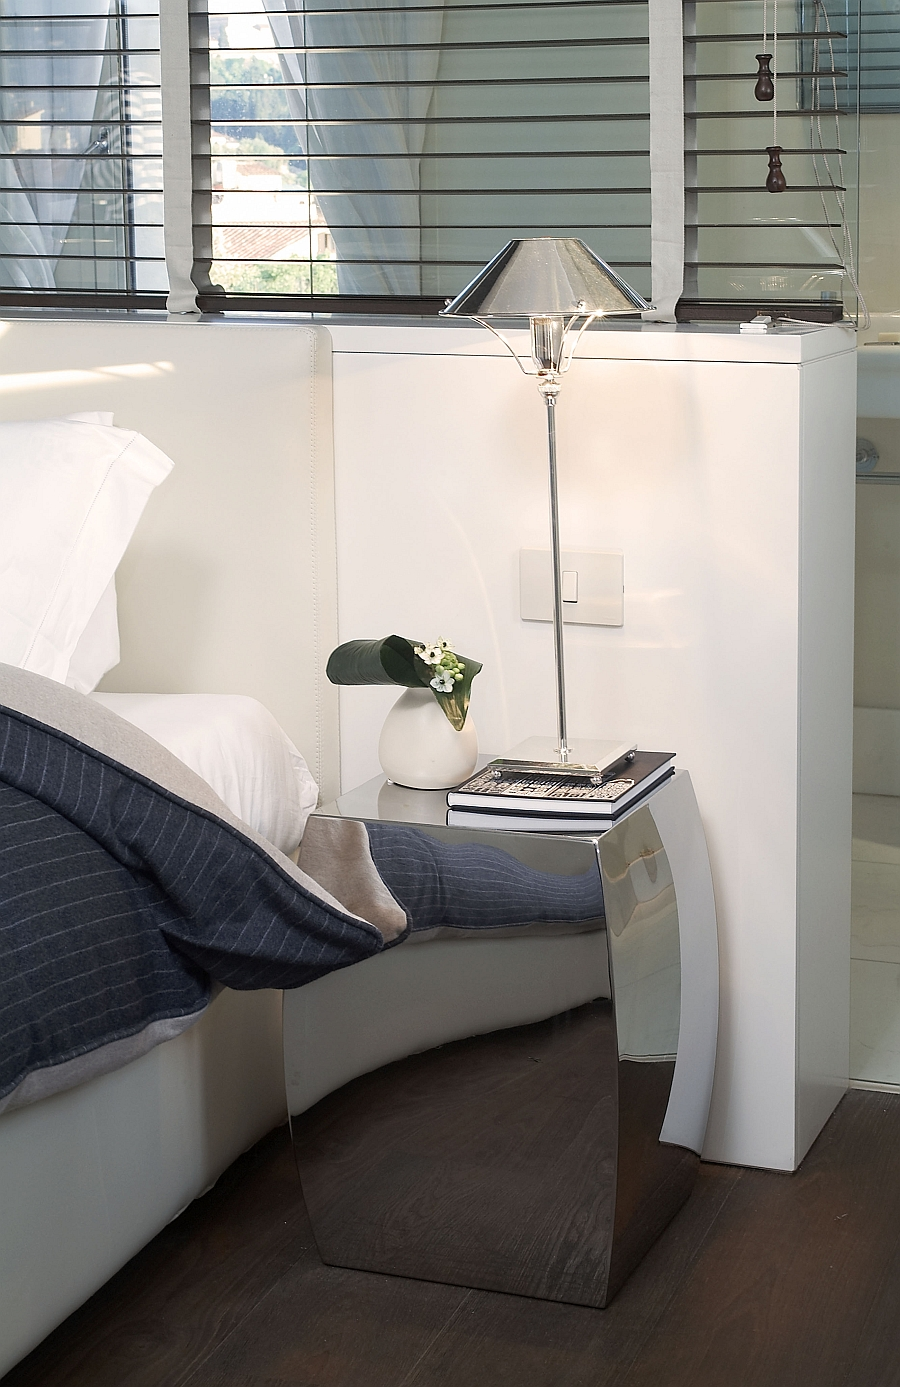 Flashy nightstand adds a cool reflective surface to the small bedroom